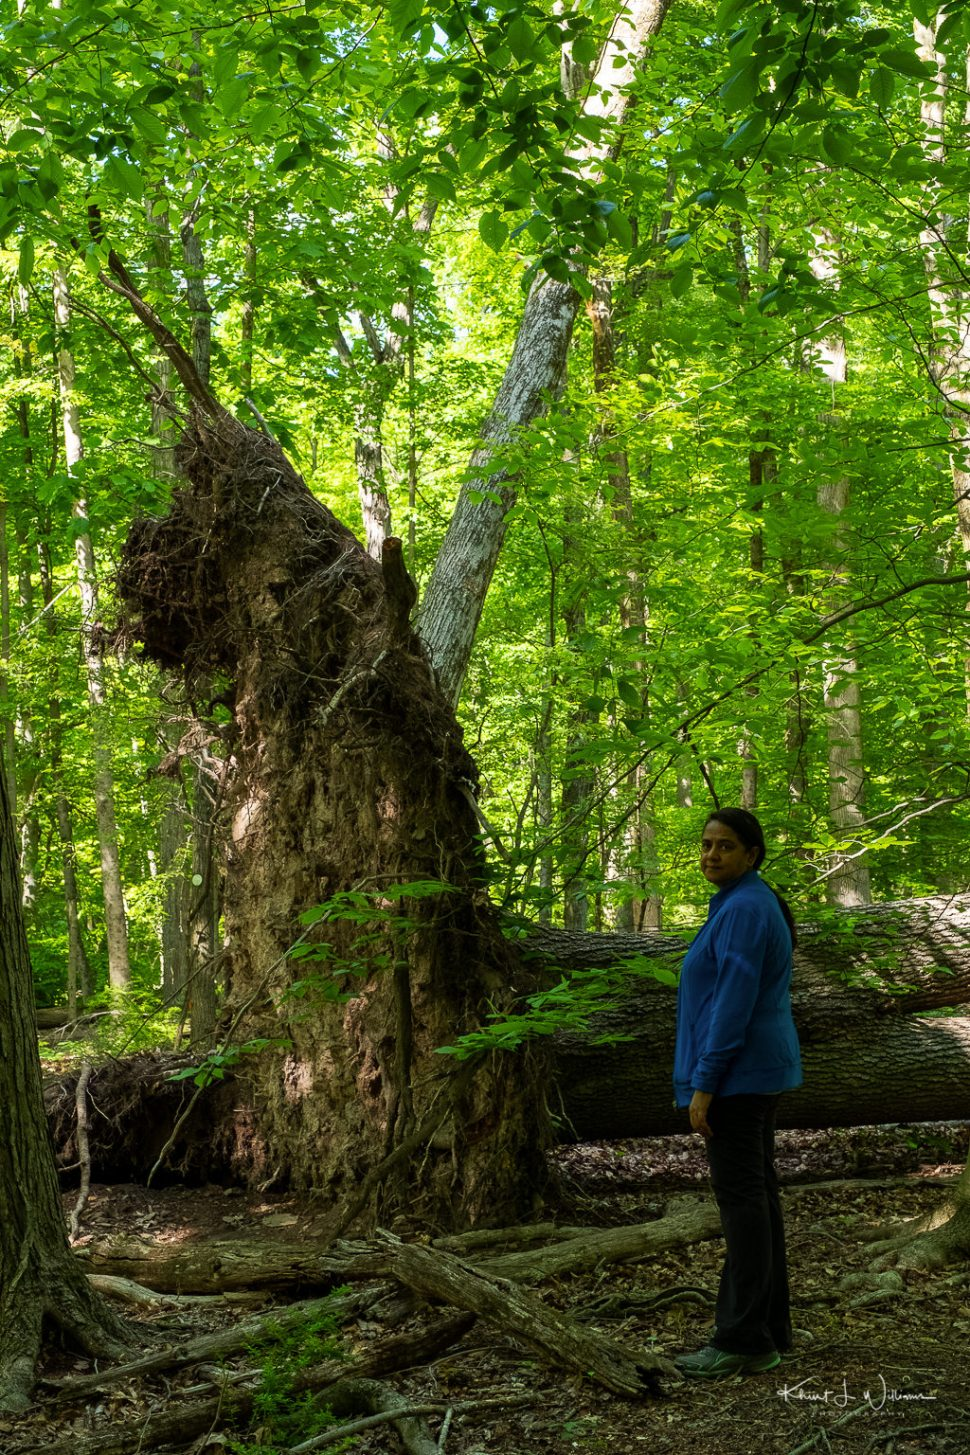 Bhavna standing next to a fallen tree stump